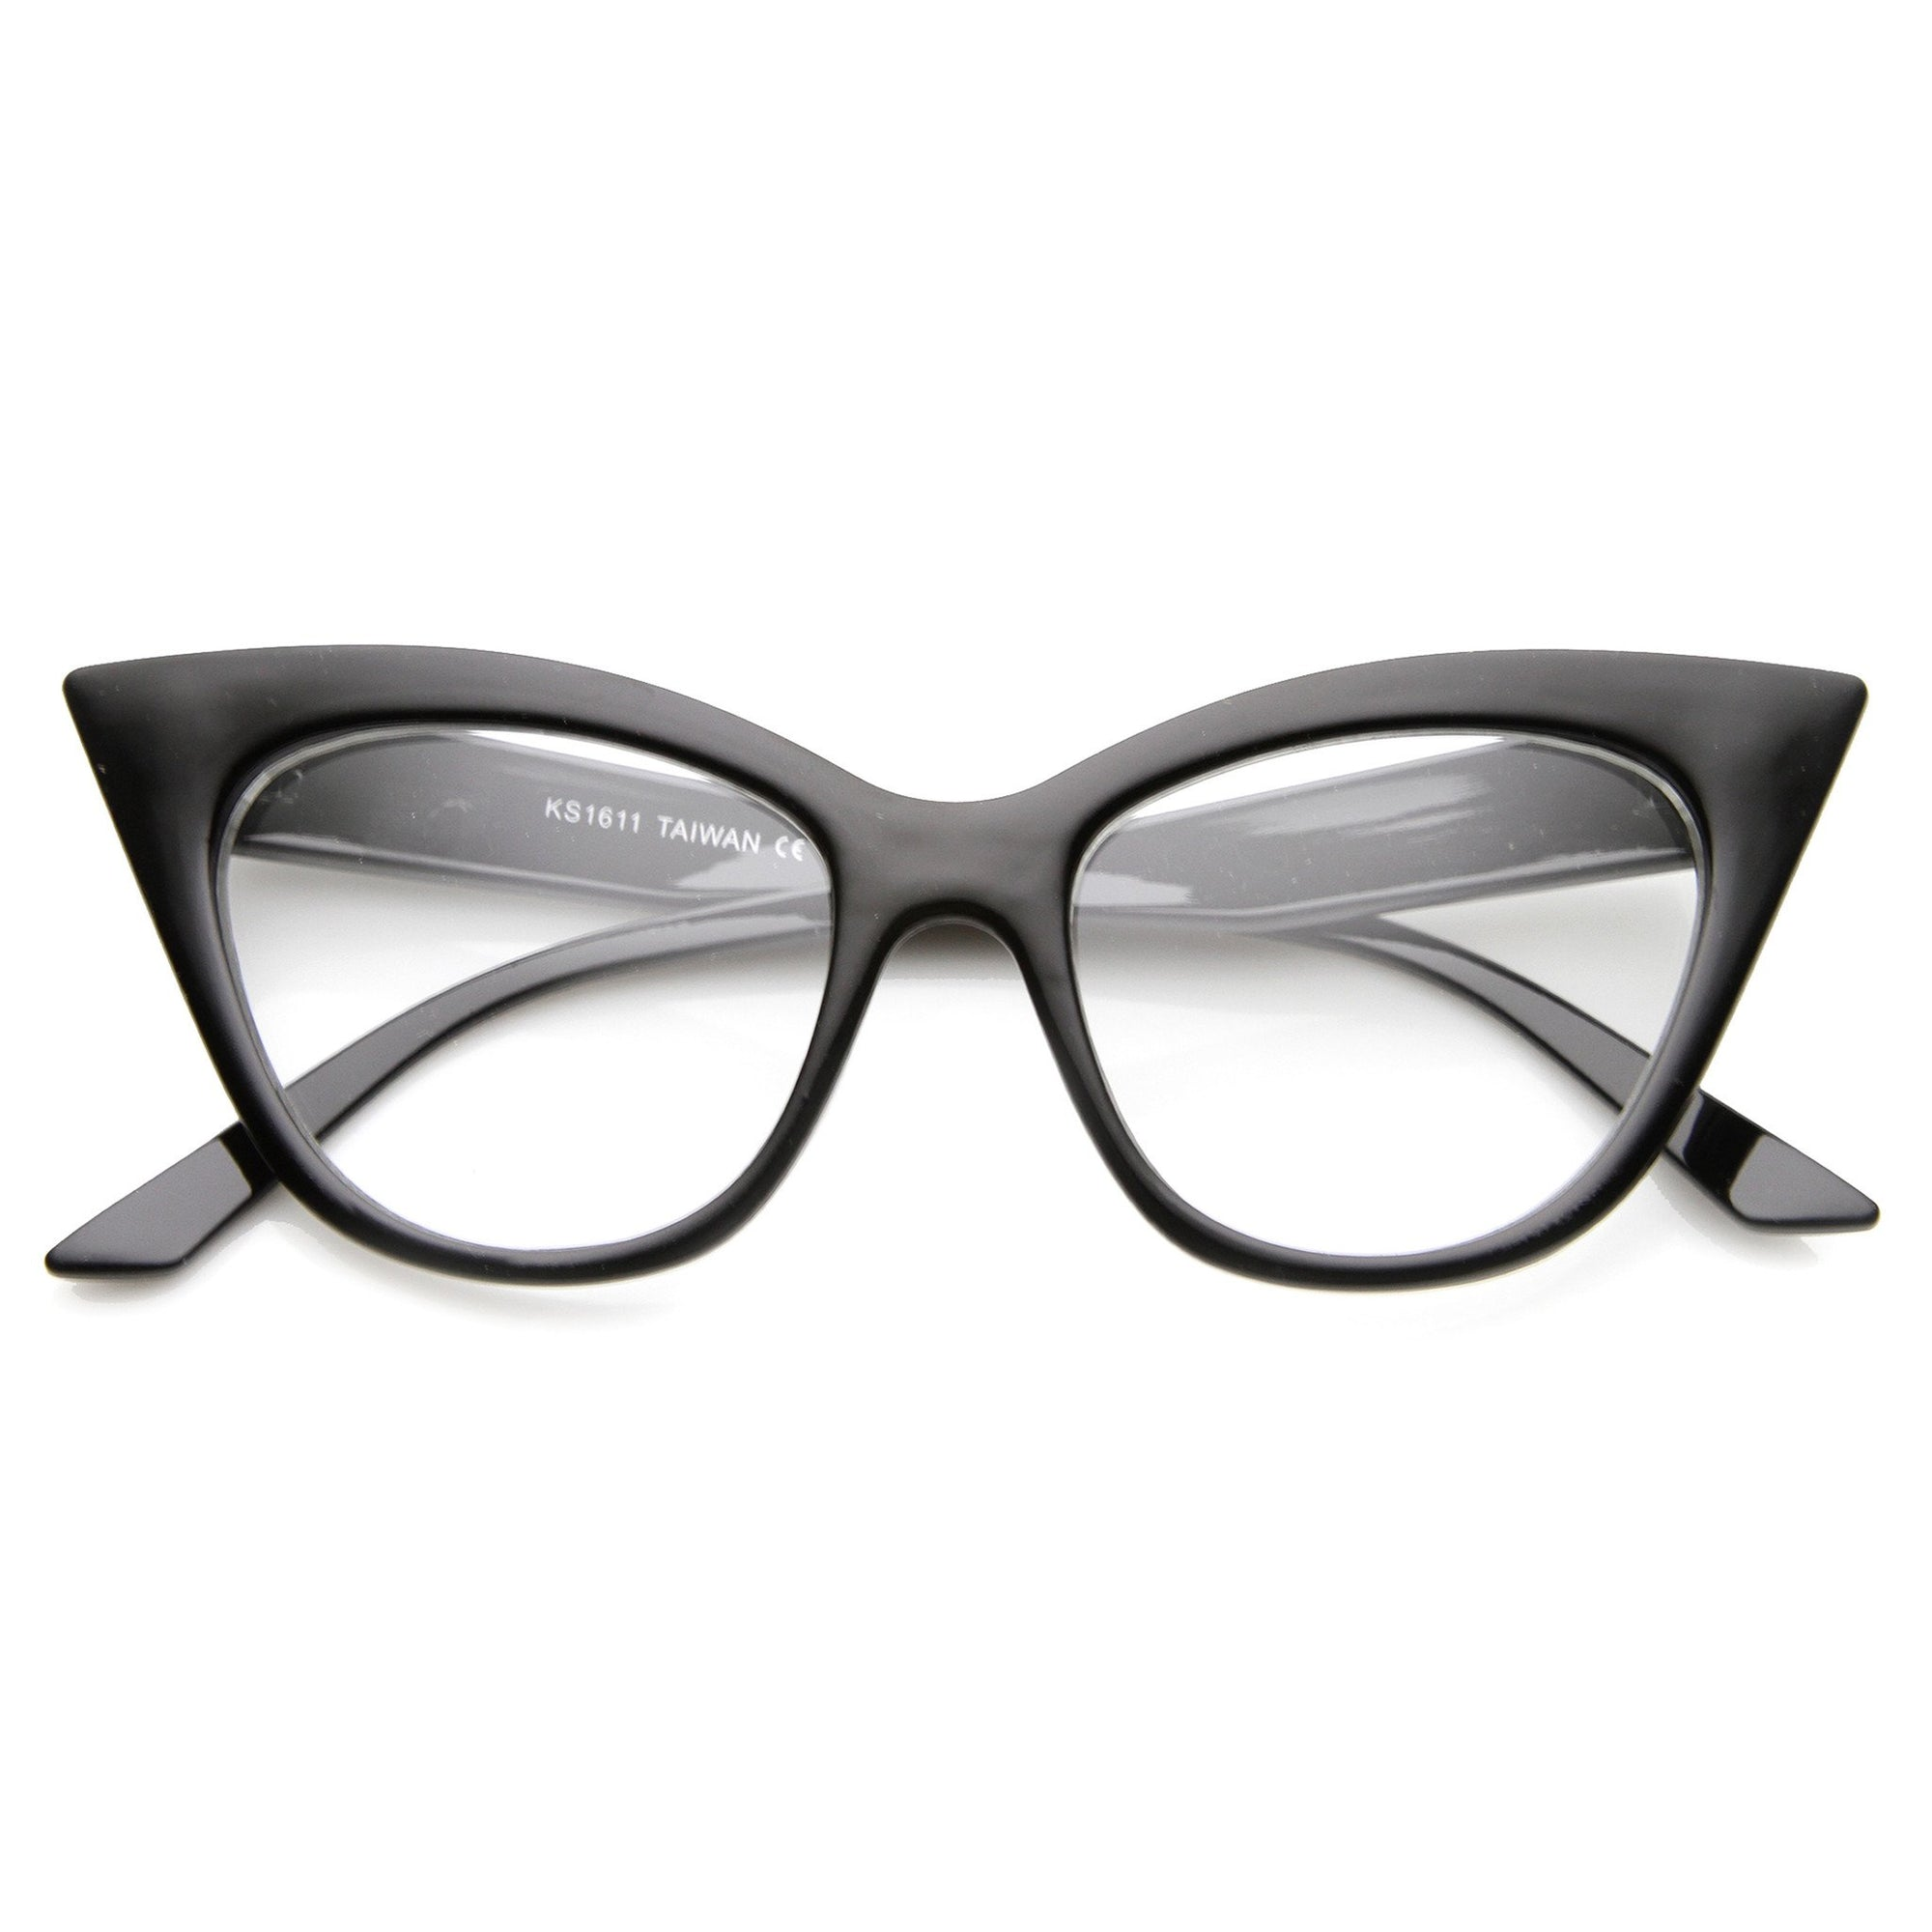 5291567c02 Optical RX Clear Lens Glasses Tagged